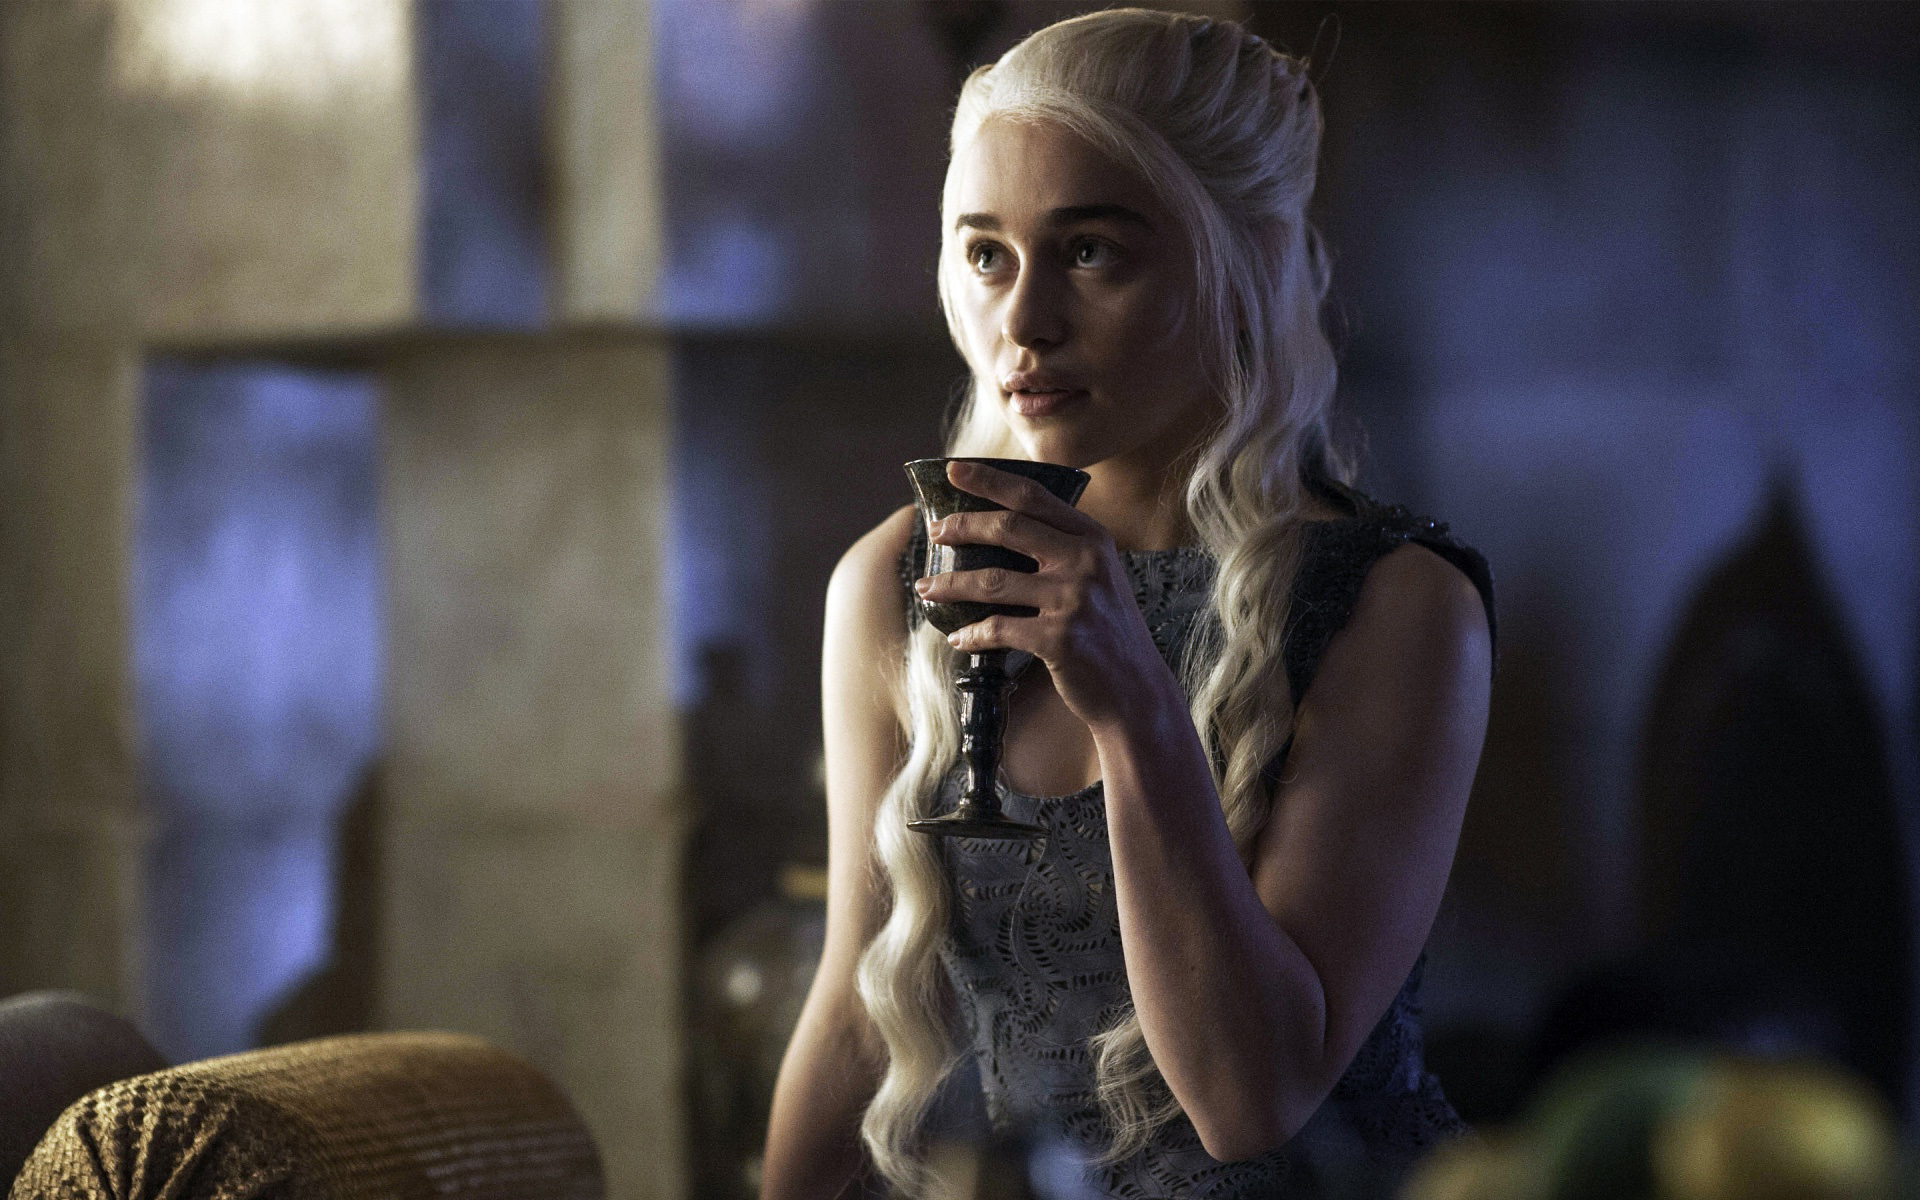 Emilia-Clarke-interprete-soumise-dans-game-of-thrones